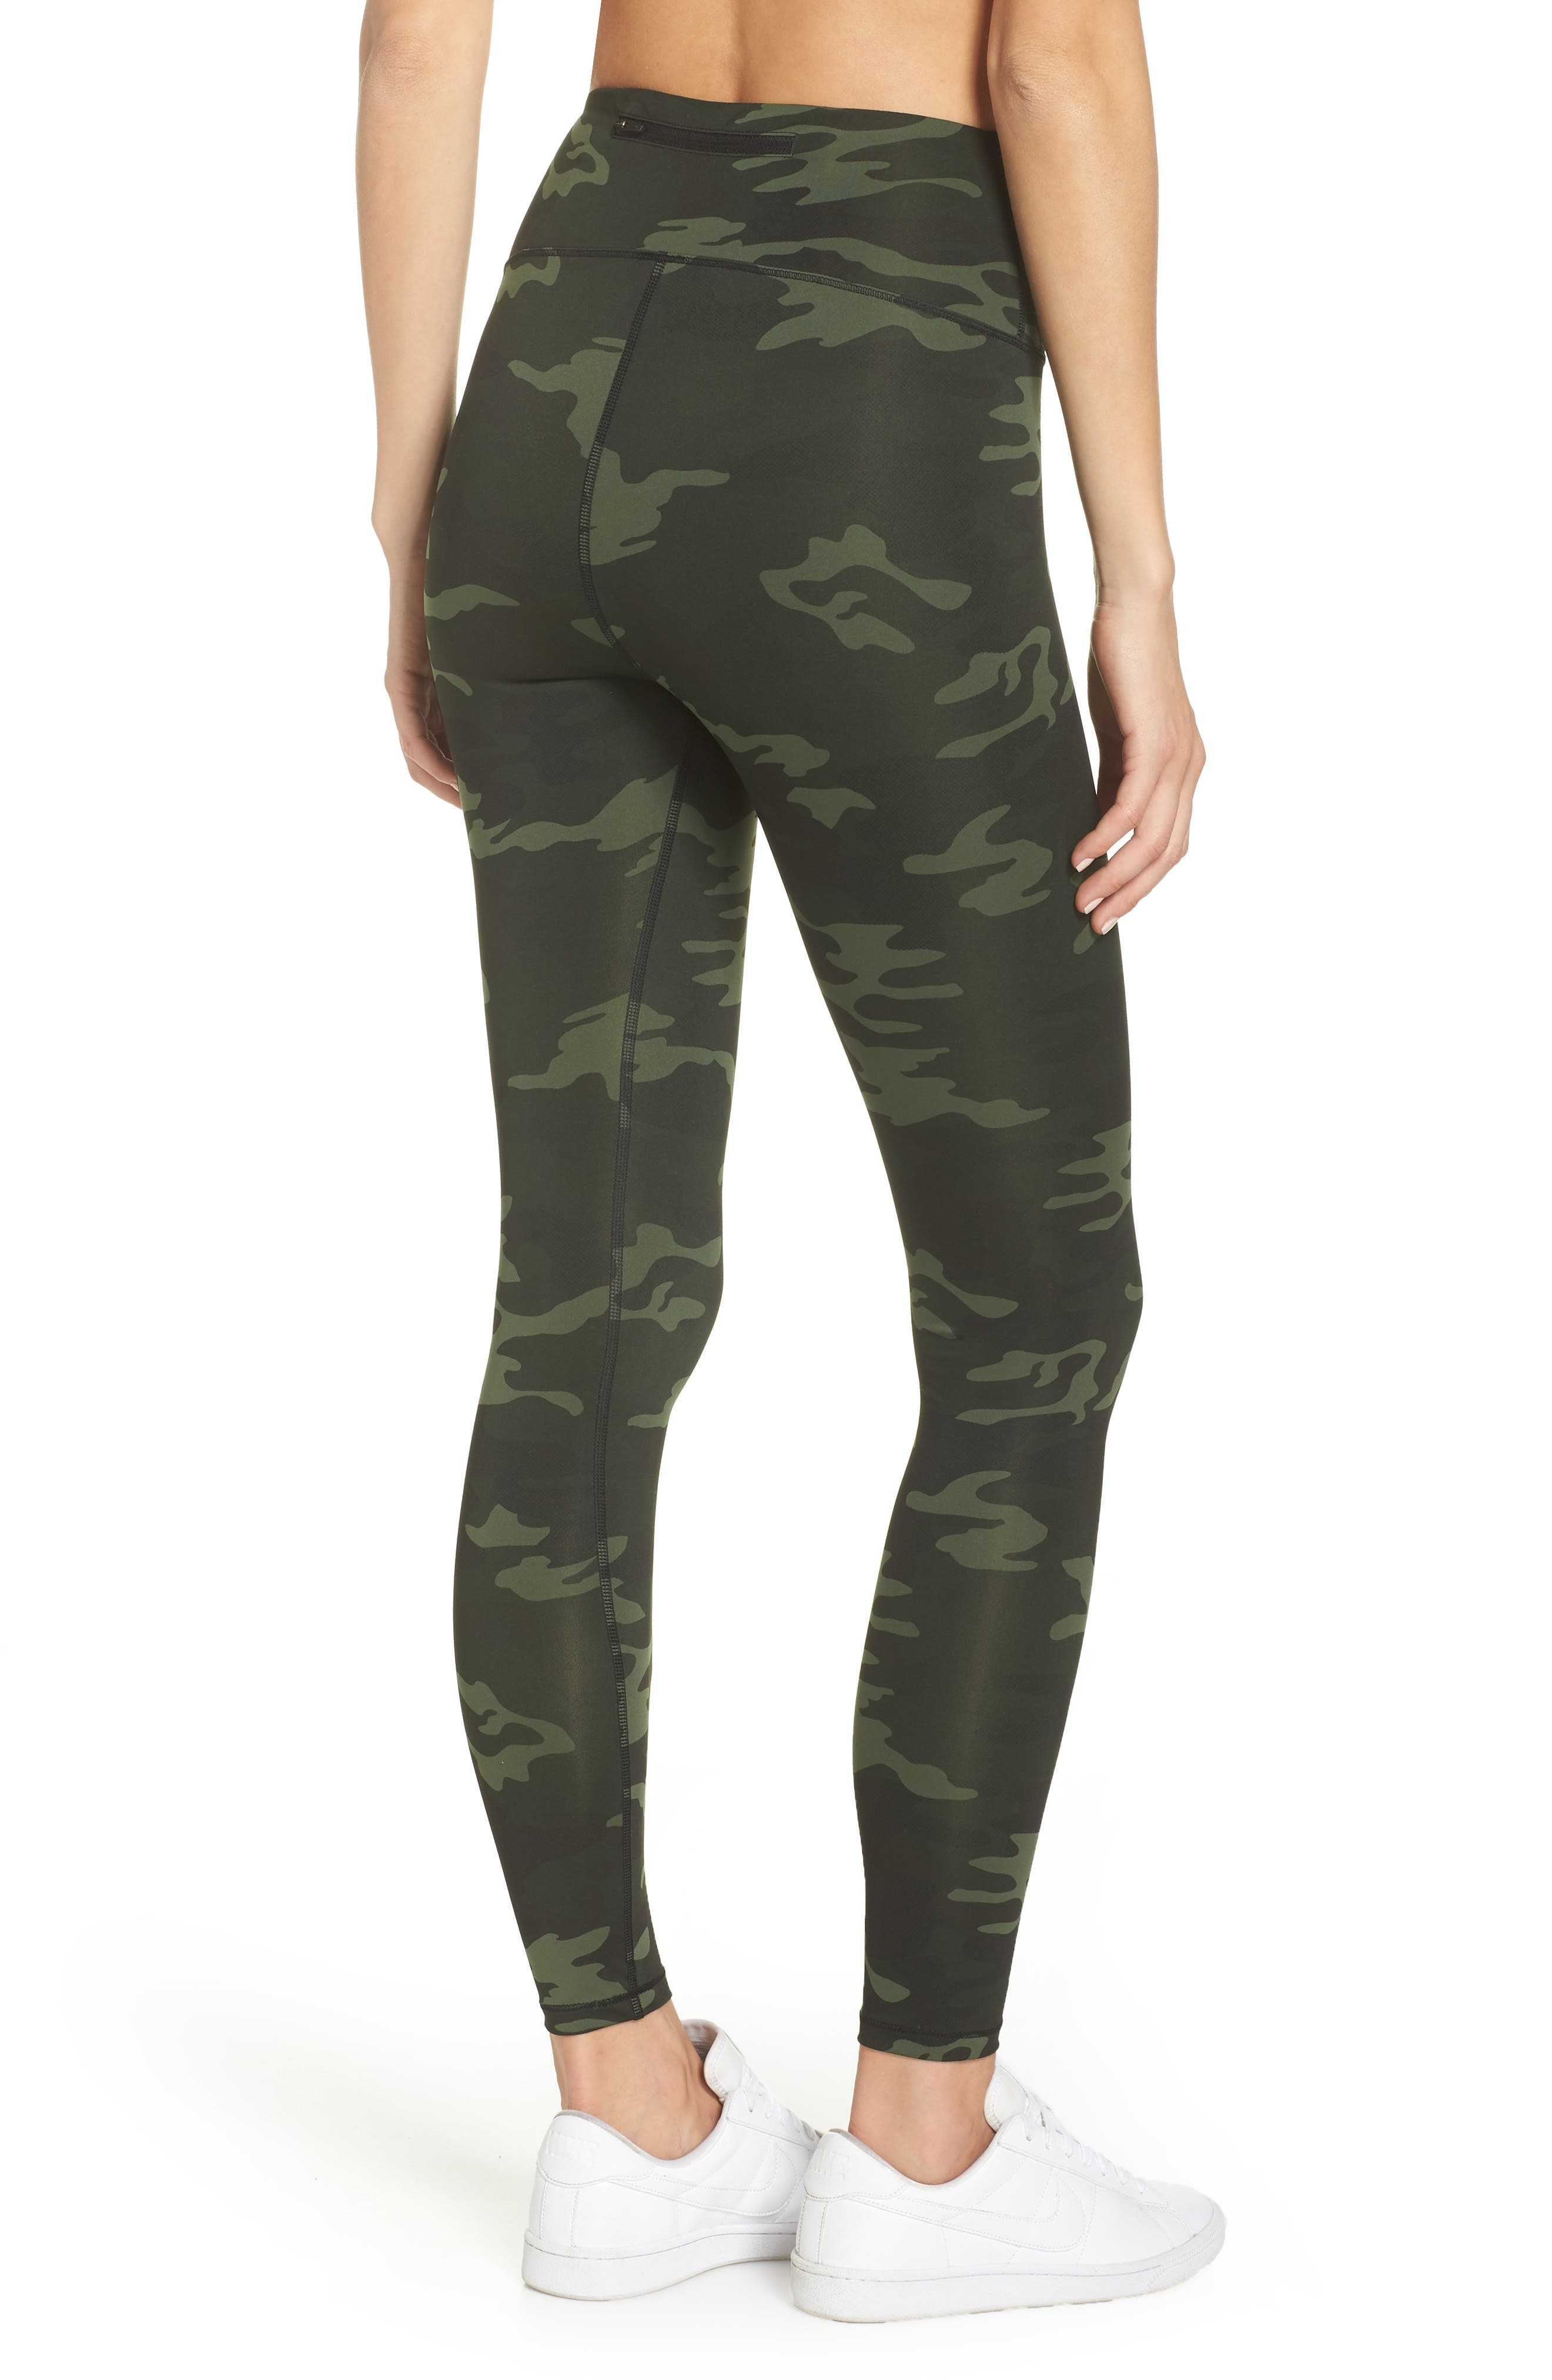 GOOD AMERICAN, Core Strength High Waist Leggings, Alternate thumbnail 2, color, CAMO001